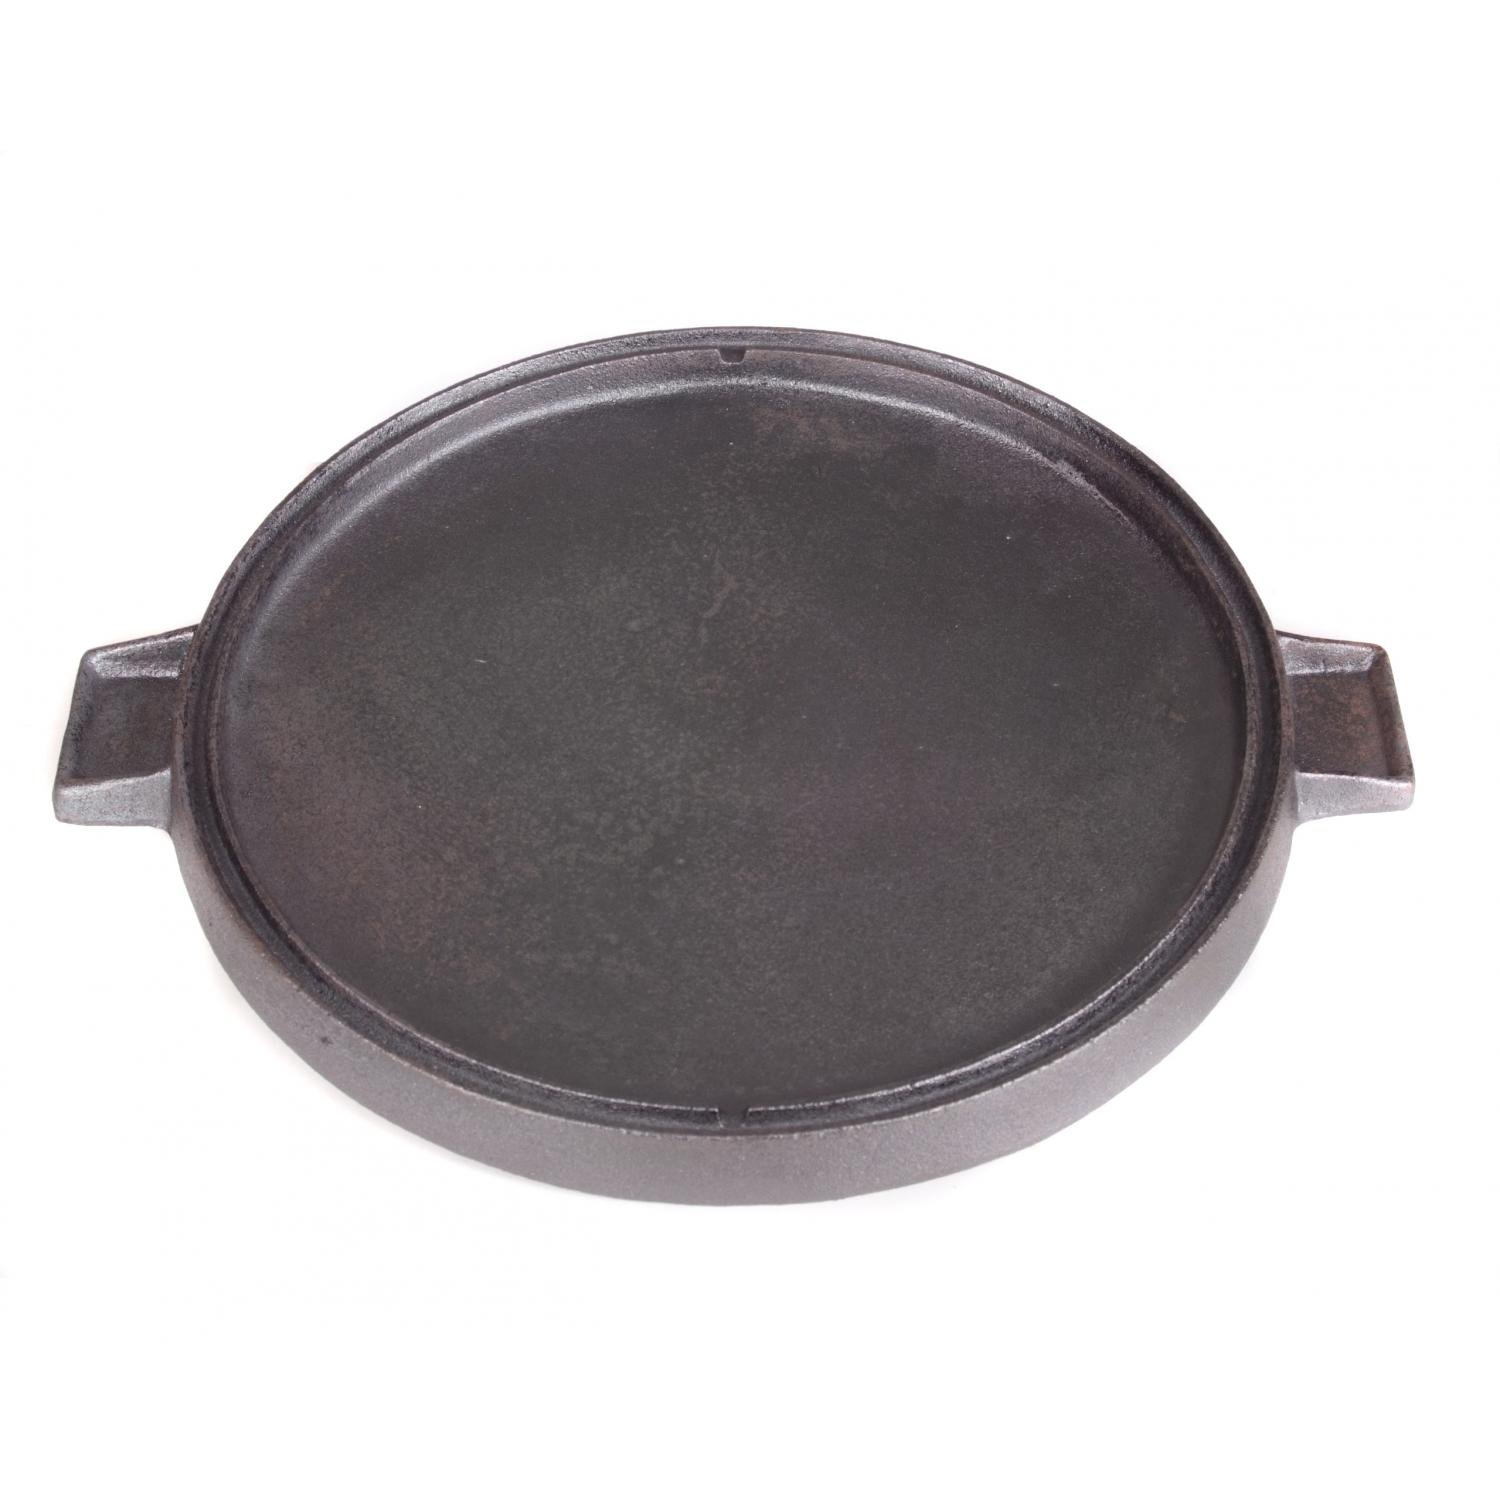 Cajun Cookware Griddles 14 Inch Round Reversible Seasoned Cast Iron Griddle